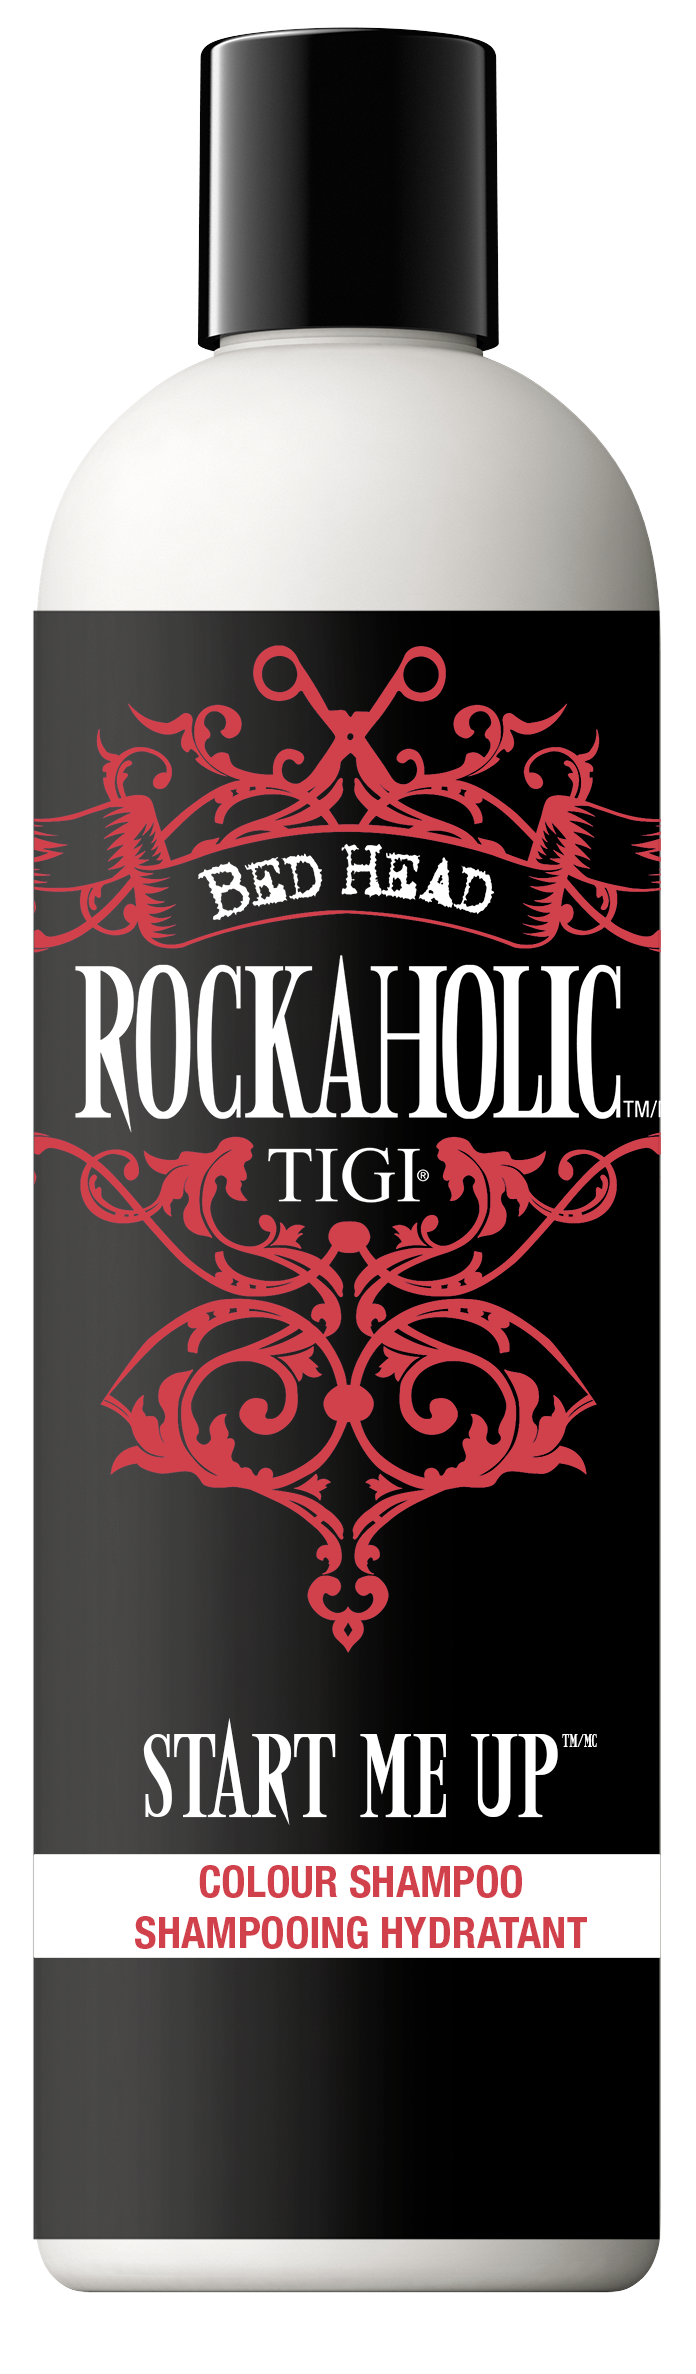 TIGI BED HEAD Rockaholic Start Me Up Colour Shampoo Шампунь для окрашенных волос (355 ml) 67150879